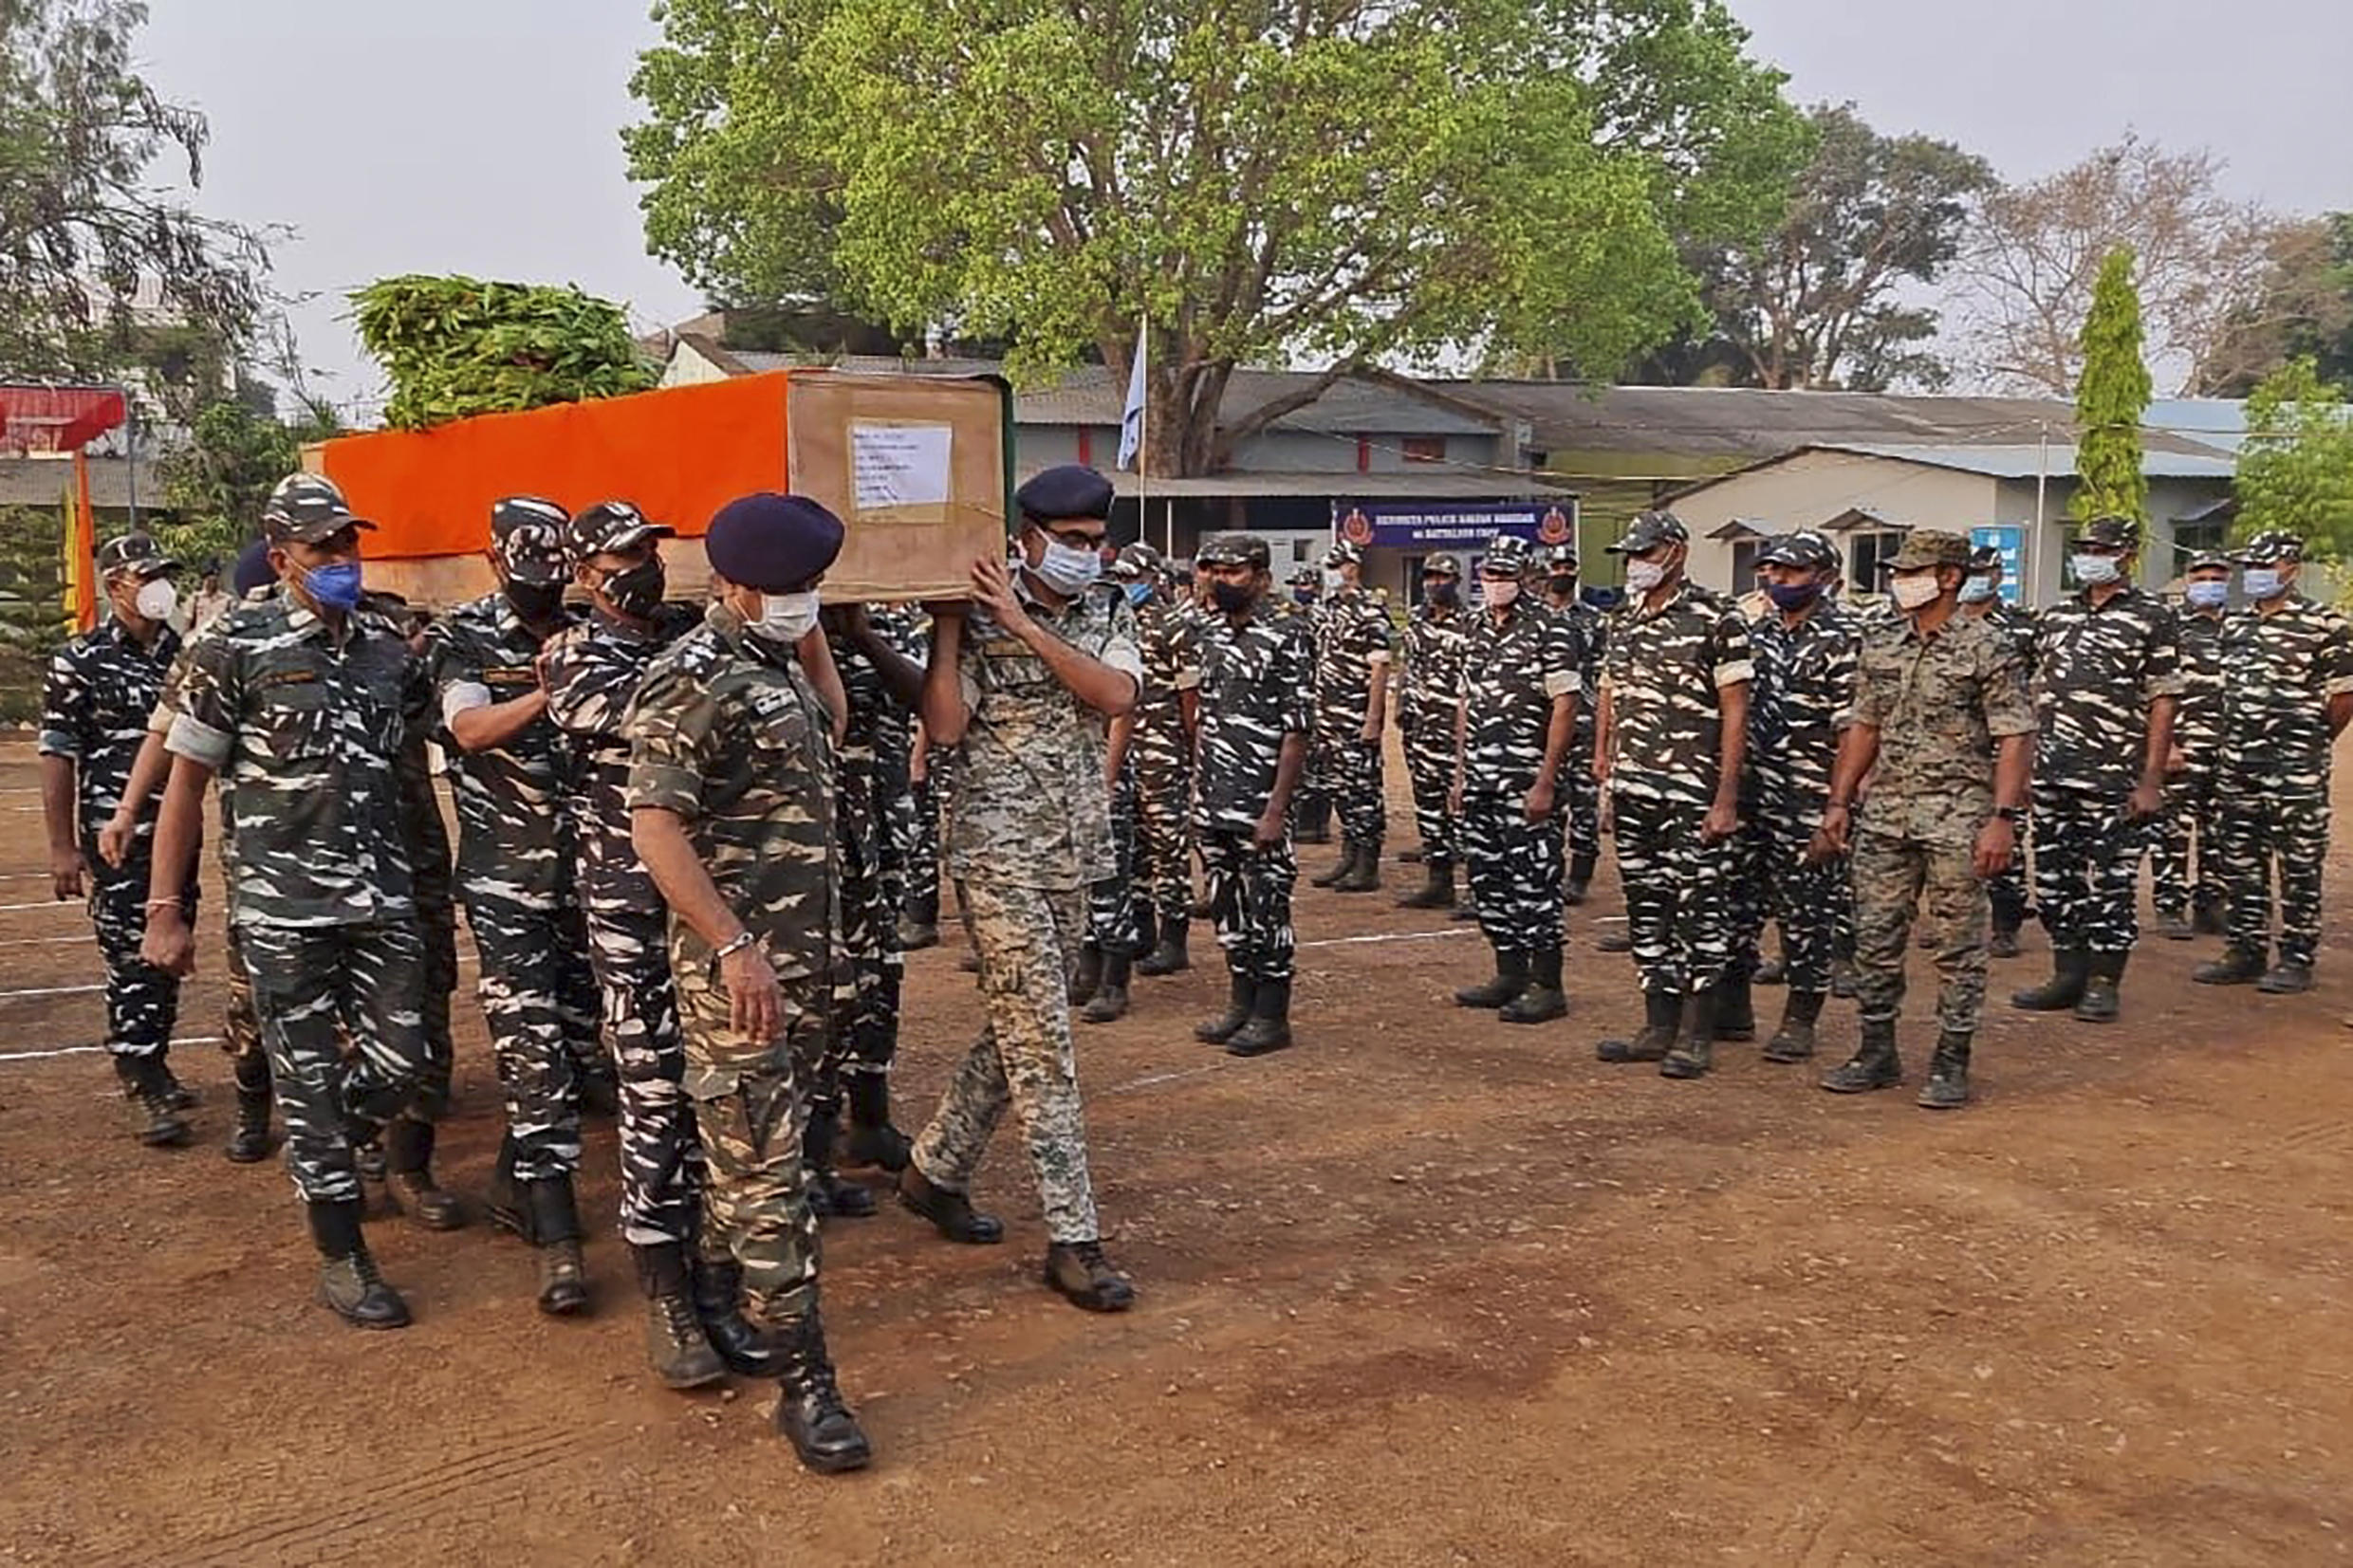 Twenty-two Indian security forces were killed and 30 others wounded in a gun battle with Maoist rebels, in the deadliest ambush of its kind in four years